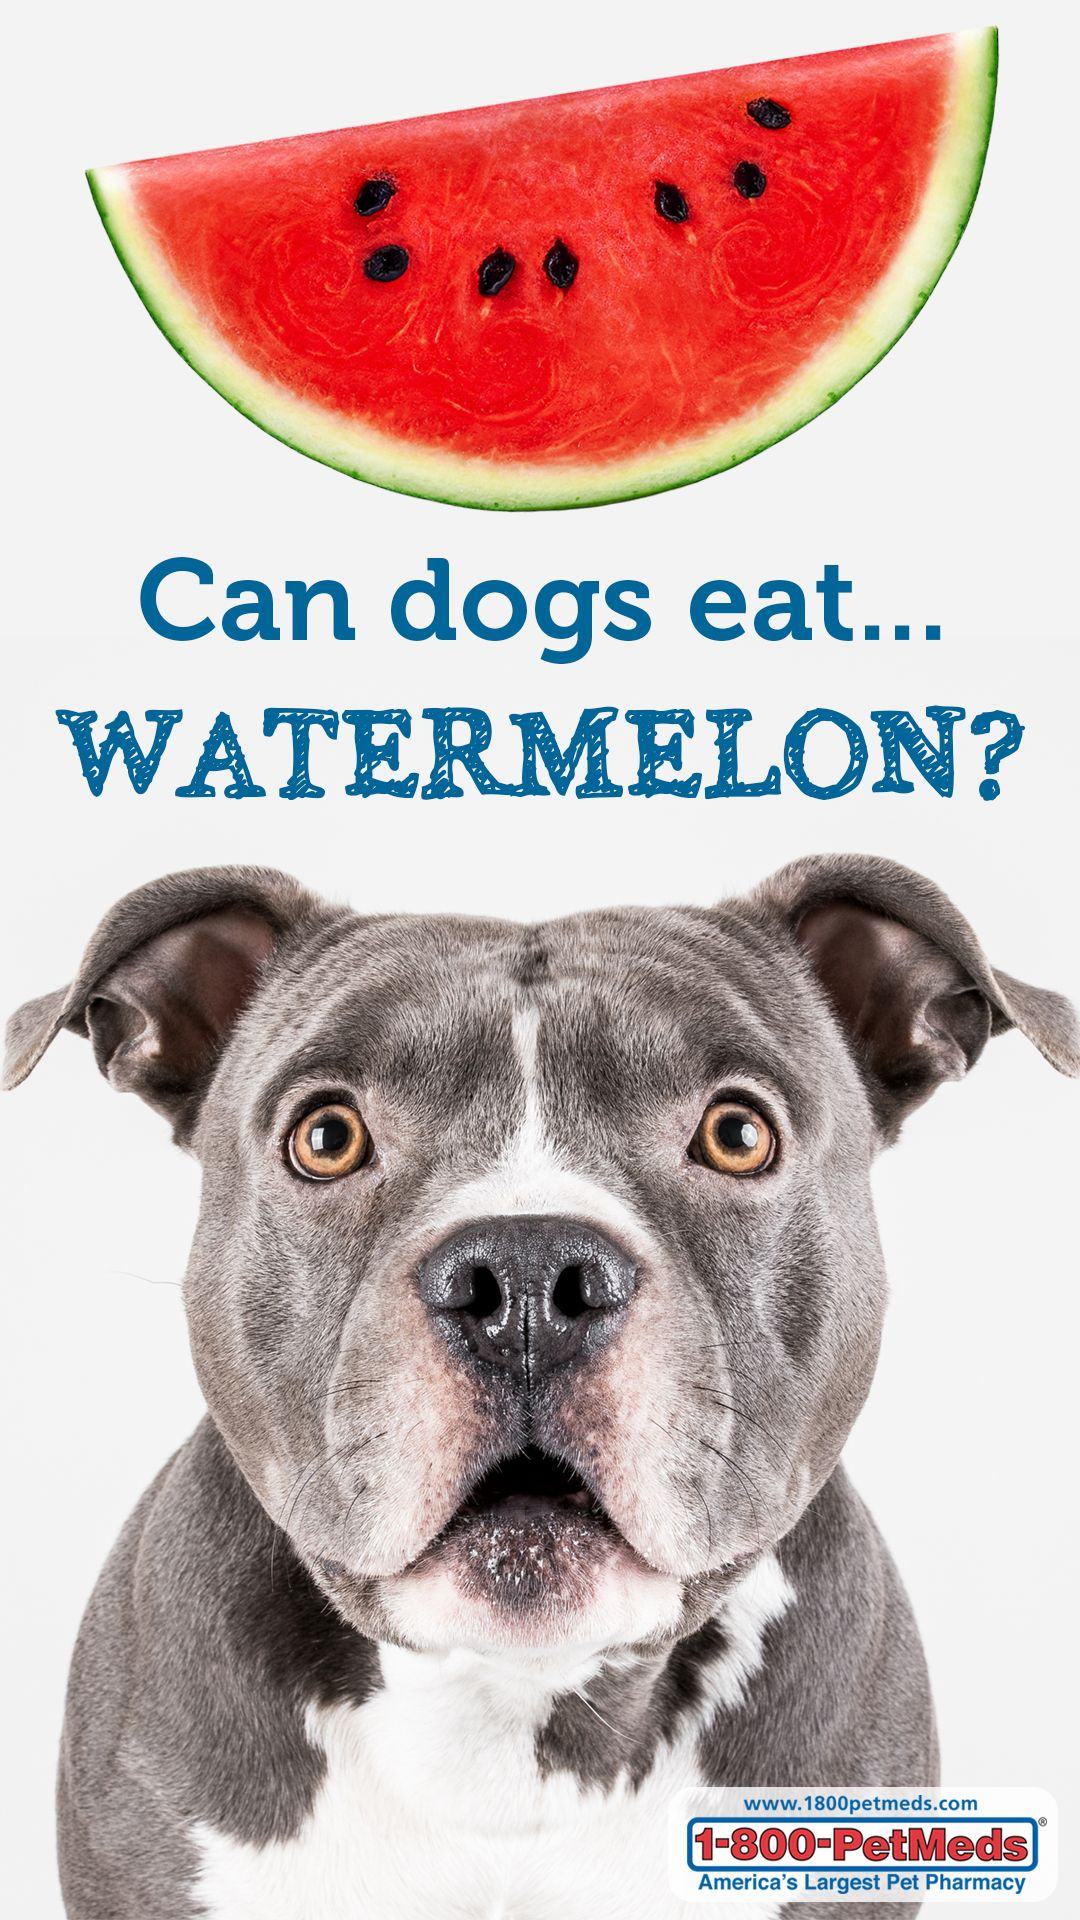 Can Dogs Eat Watermelon? 1800PetMeds® Can dogs eat